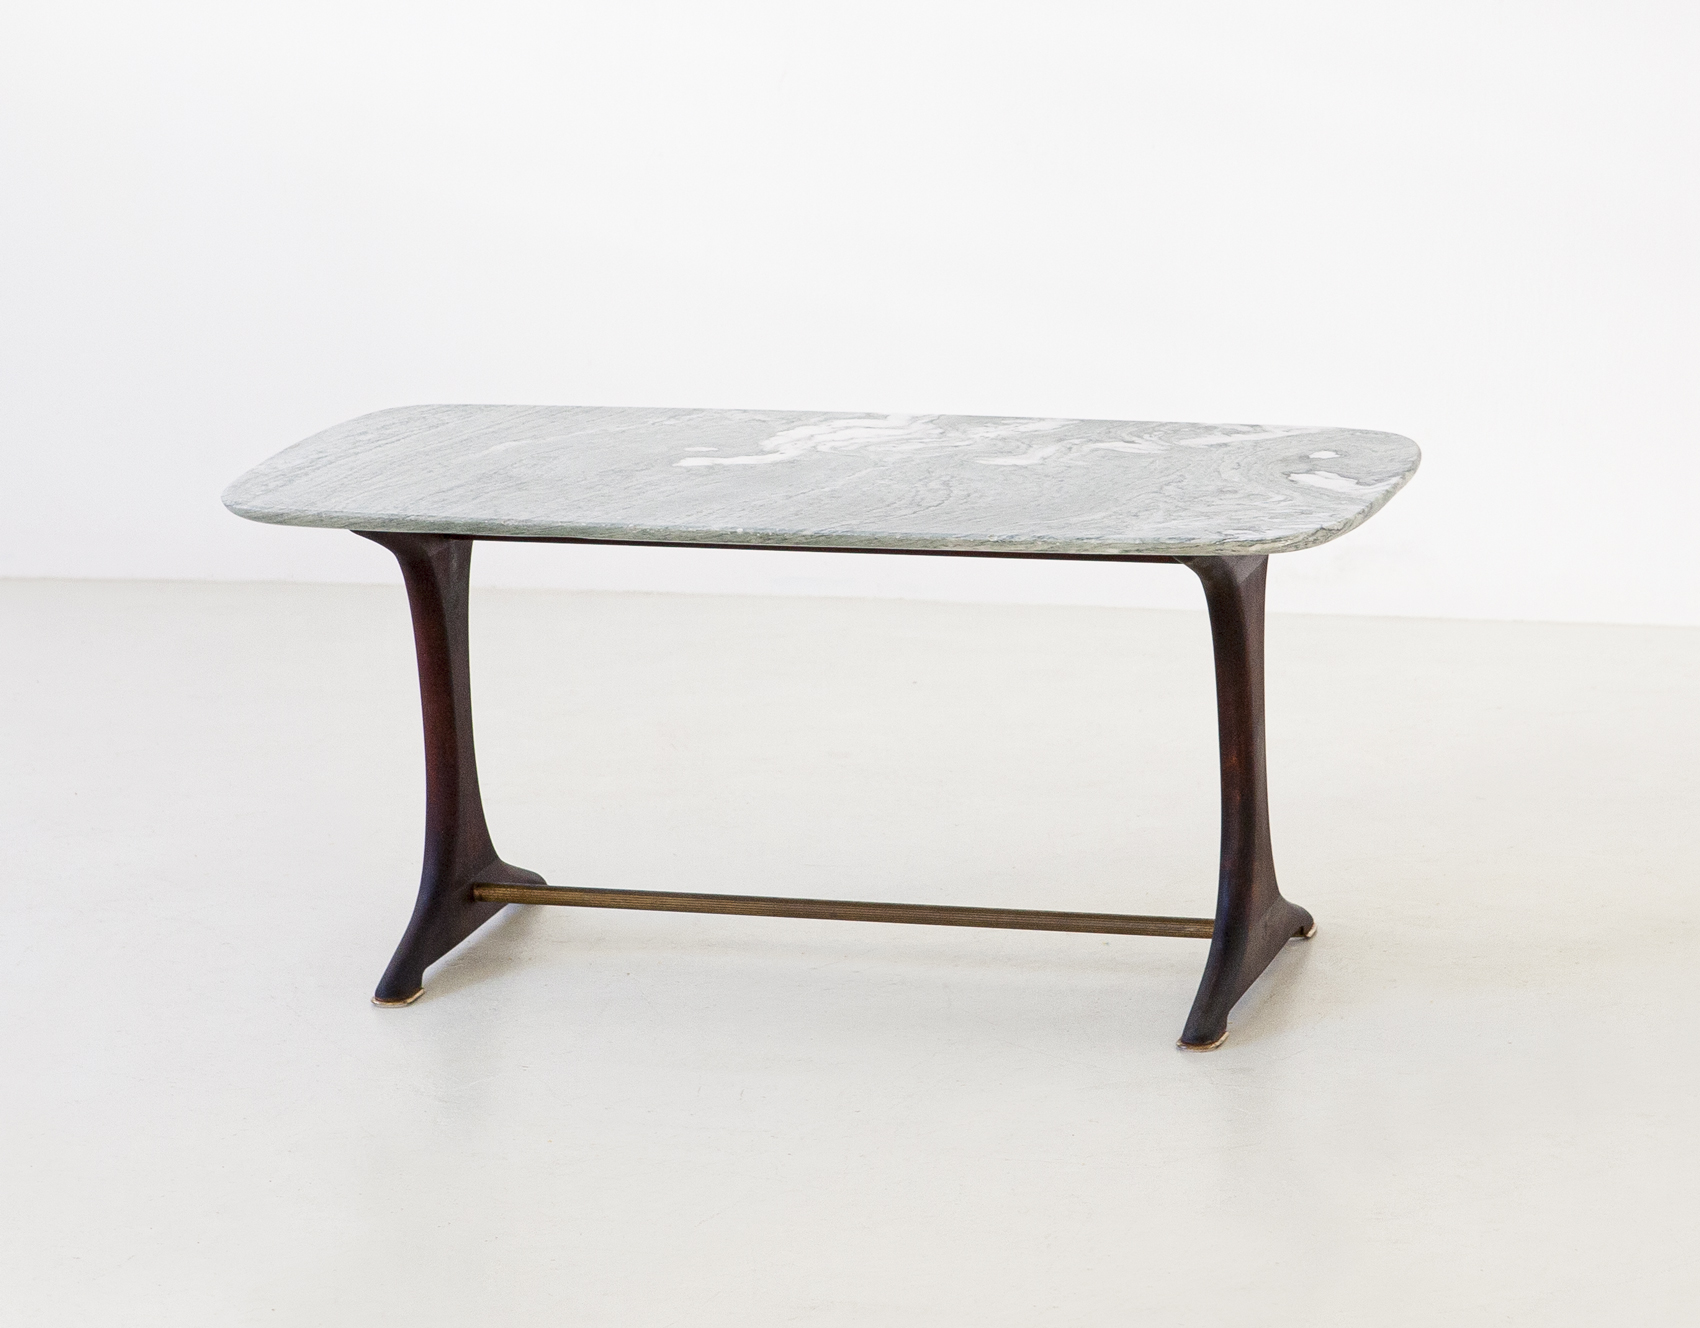 1950s-italian-low-table-with-marble-top-4-t88